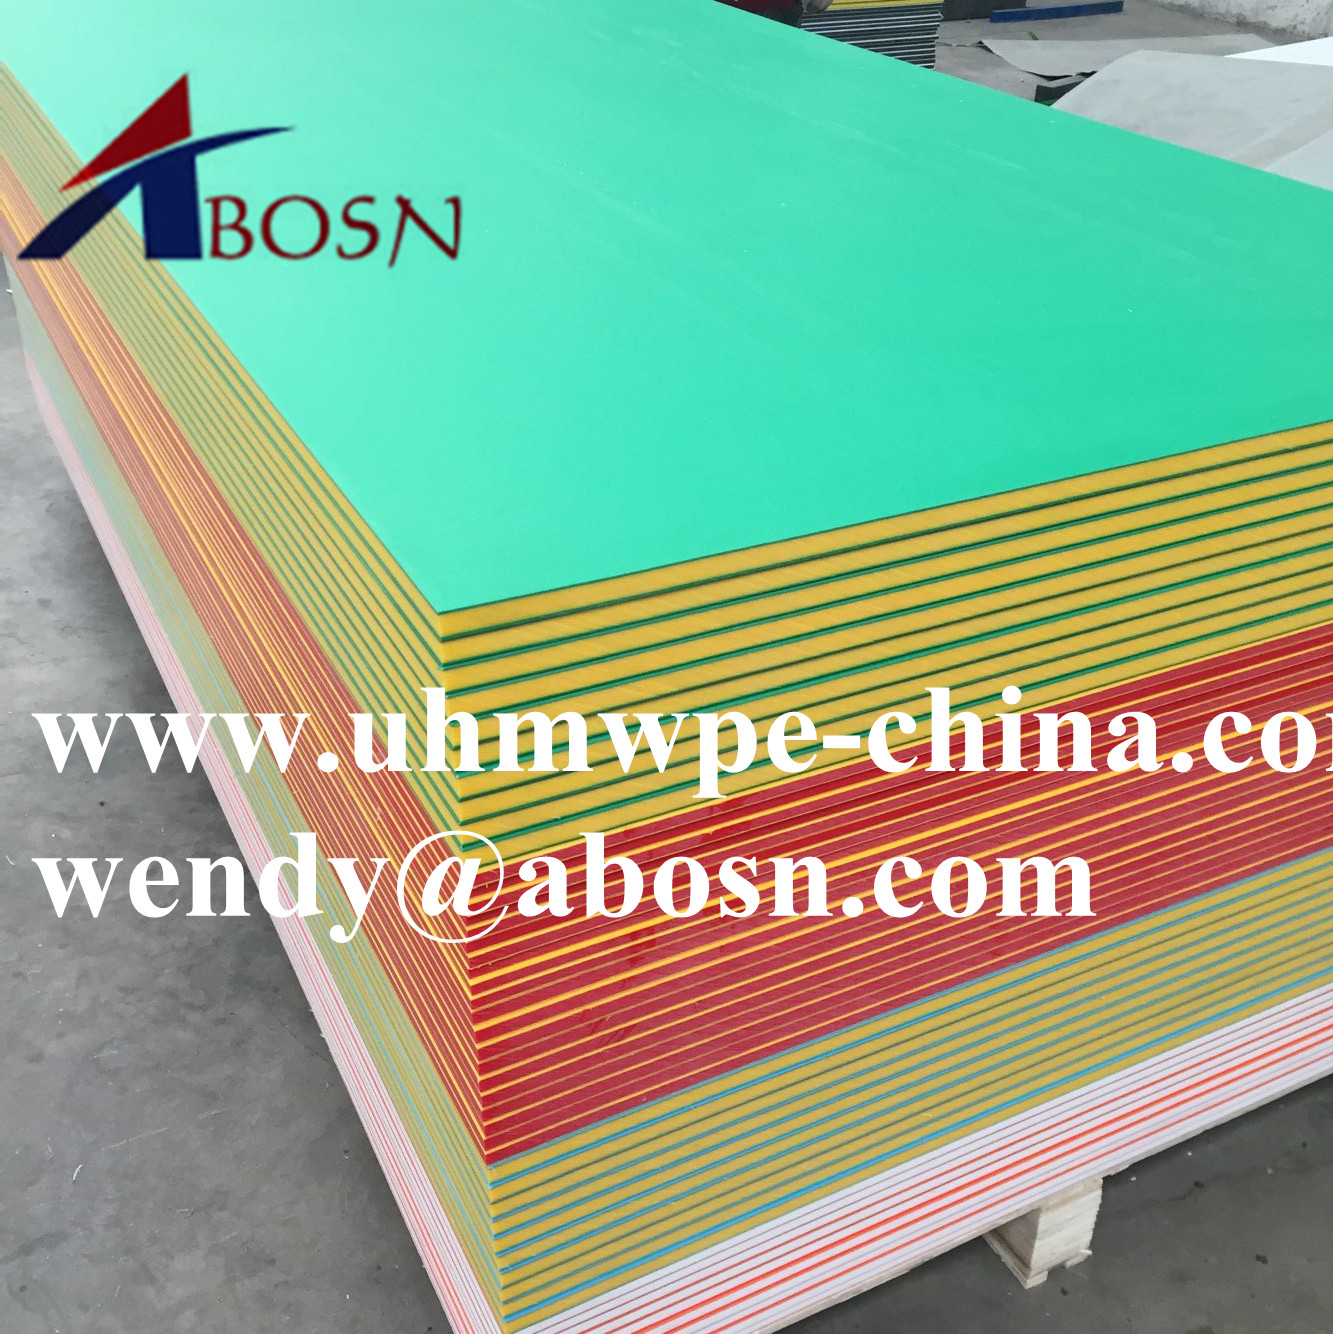 Uv Resistance Hdpe Color Core Sheet Uhmw Pe Bicolor